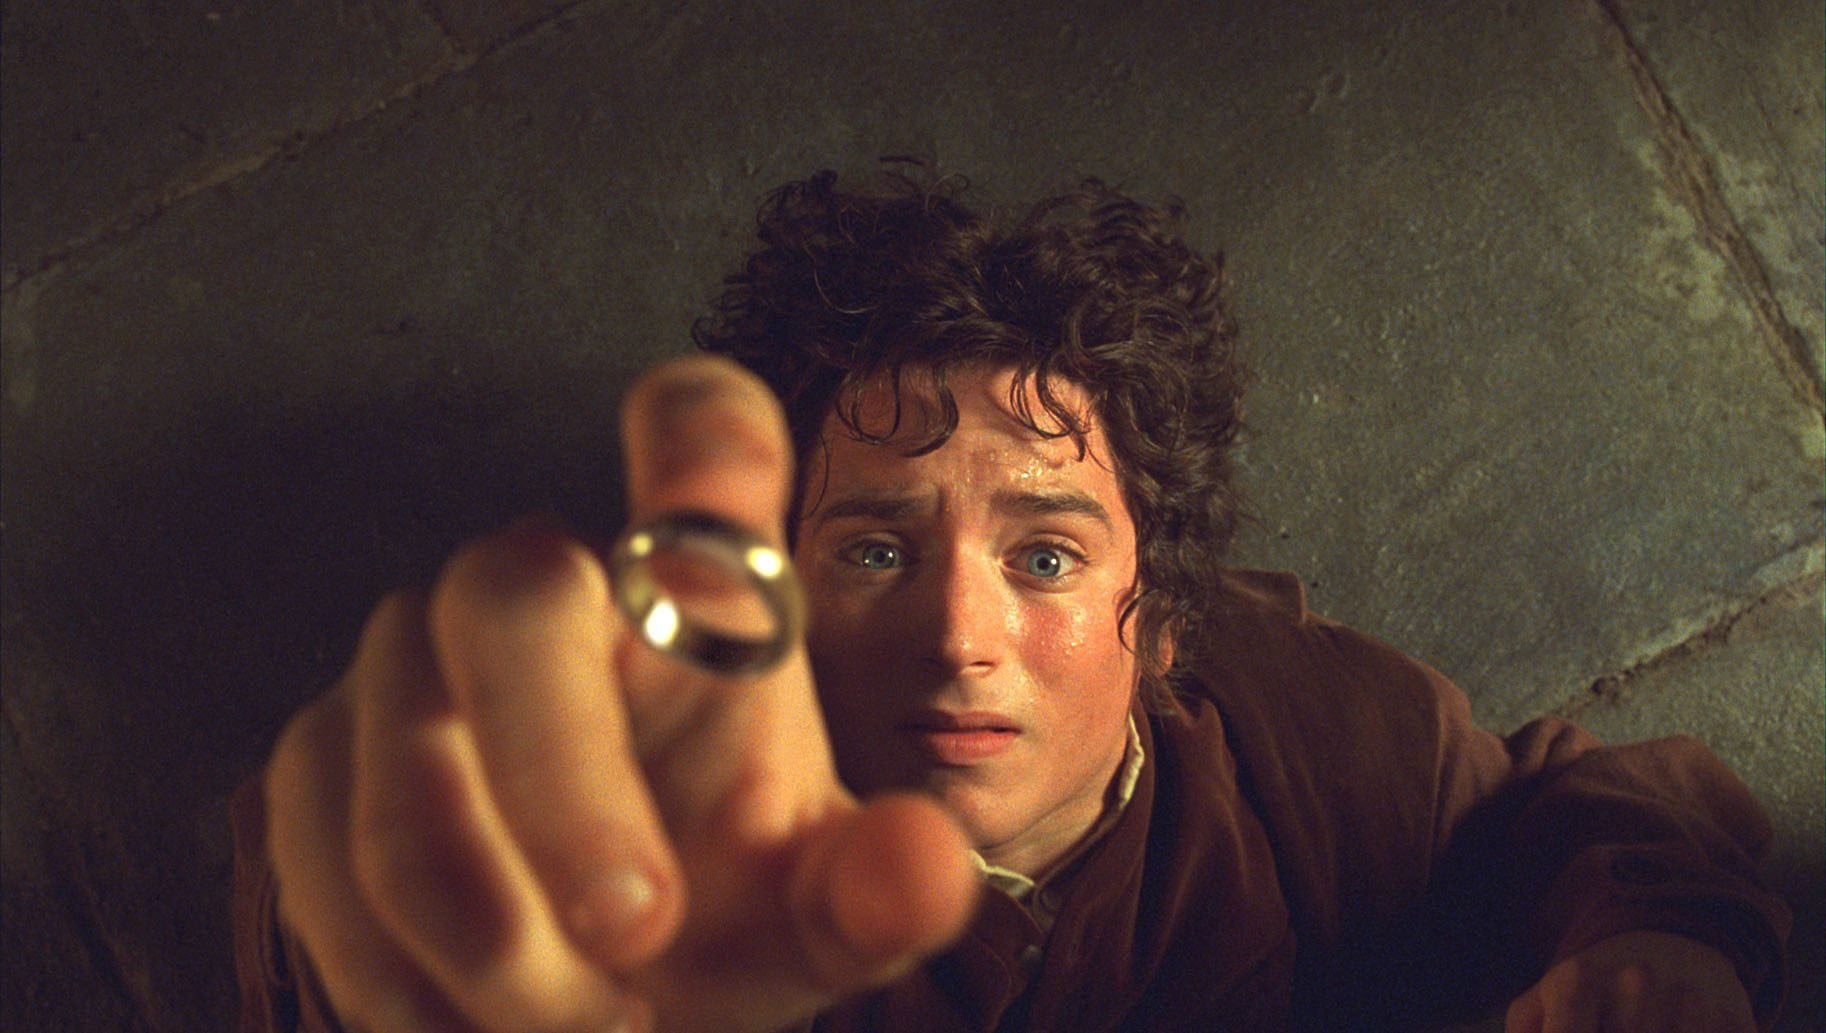 13 Hidden Messages in the Lord of the Rings Trilogy You Never Noticed